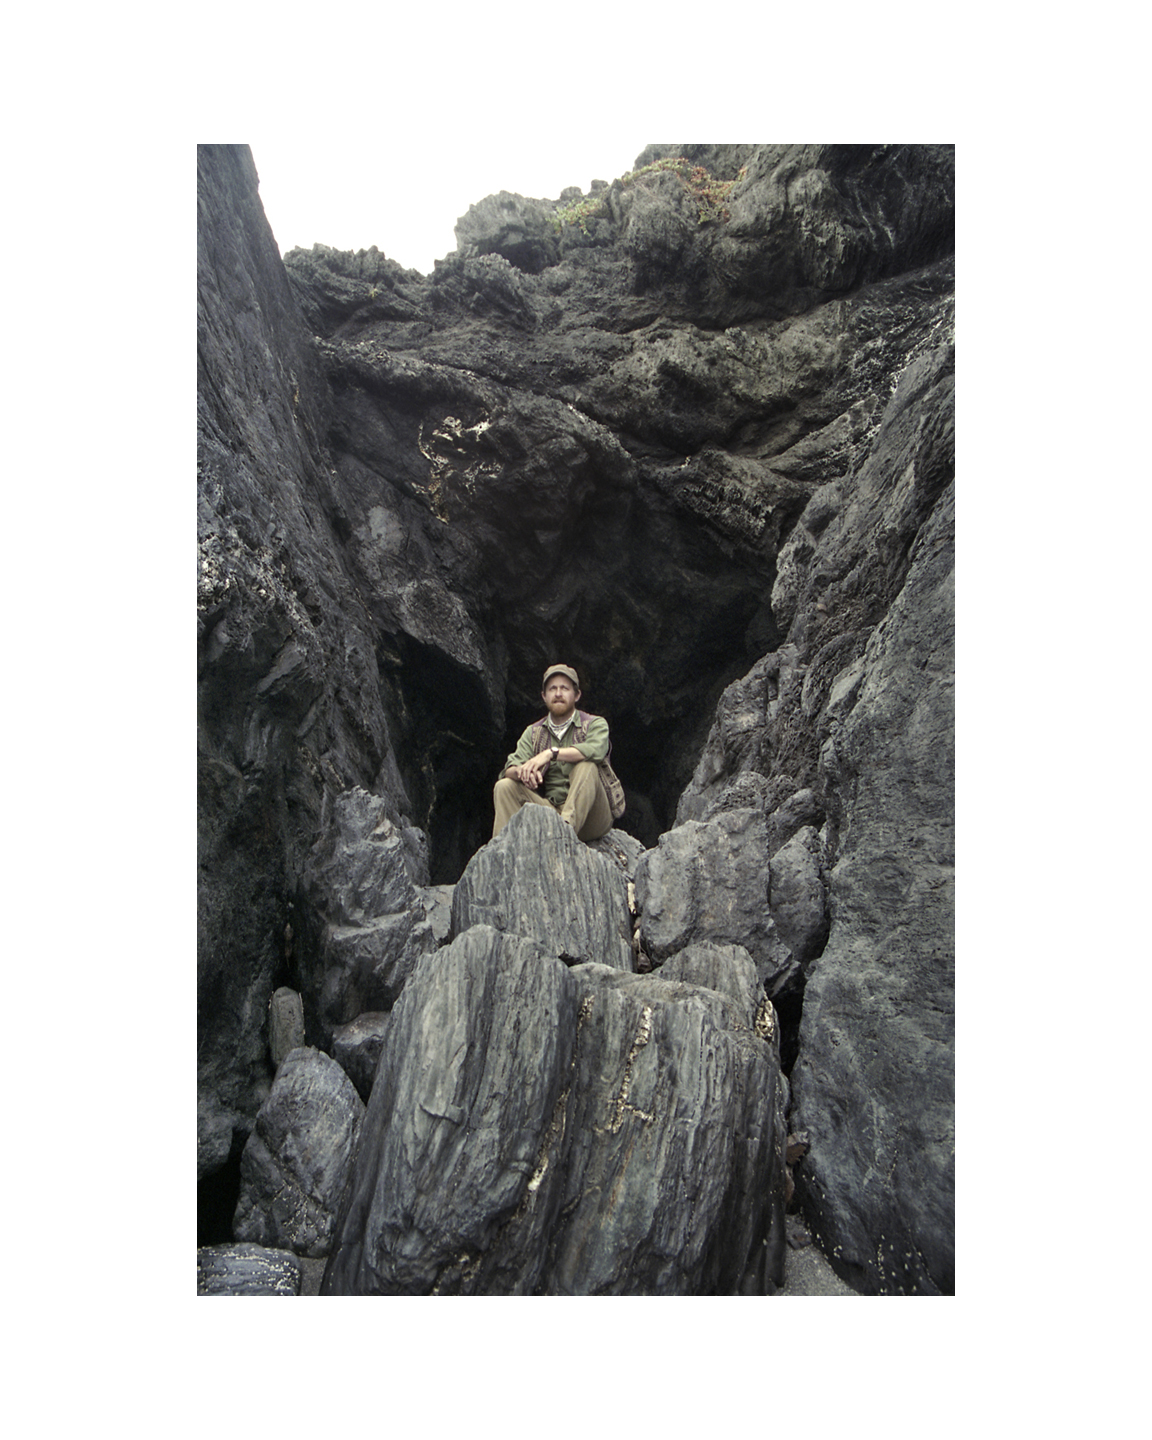 Jeff in the Petrified Sequoia Beach Cave - Big Sur